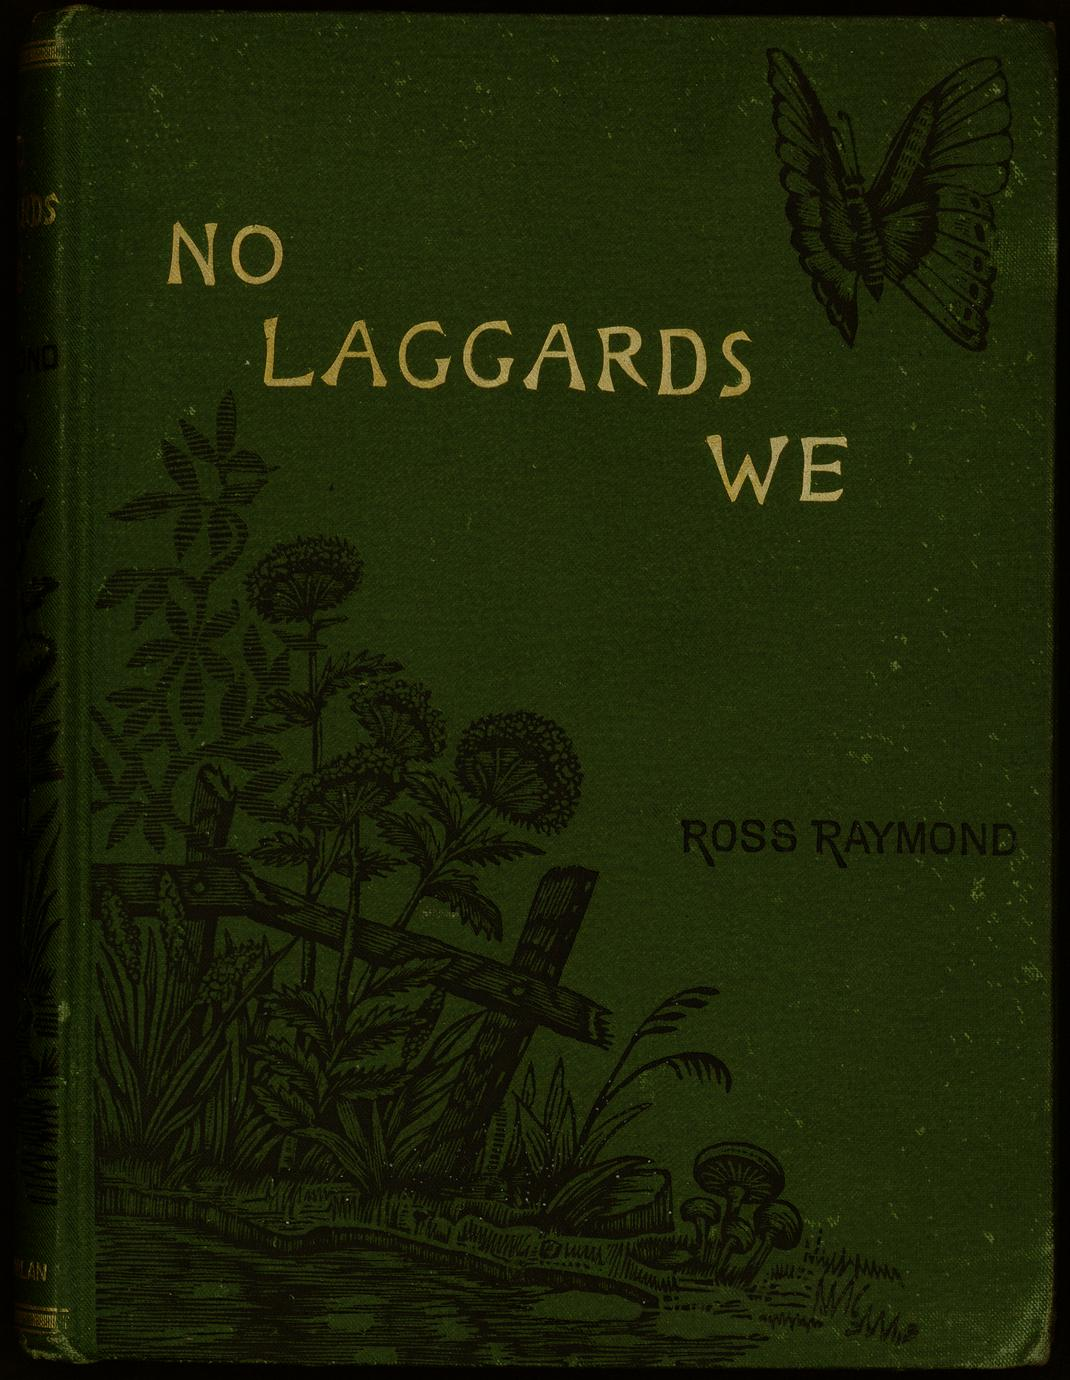 No laggards we (1 of 3)